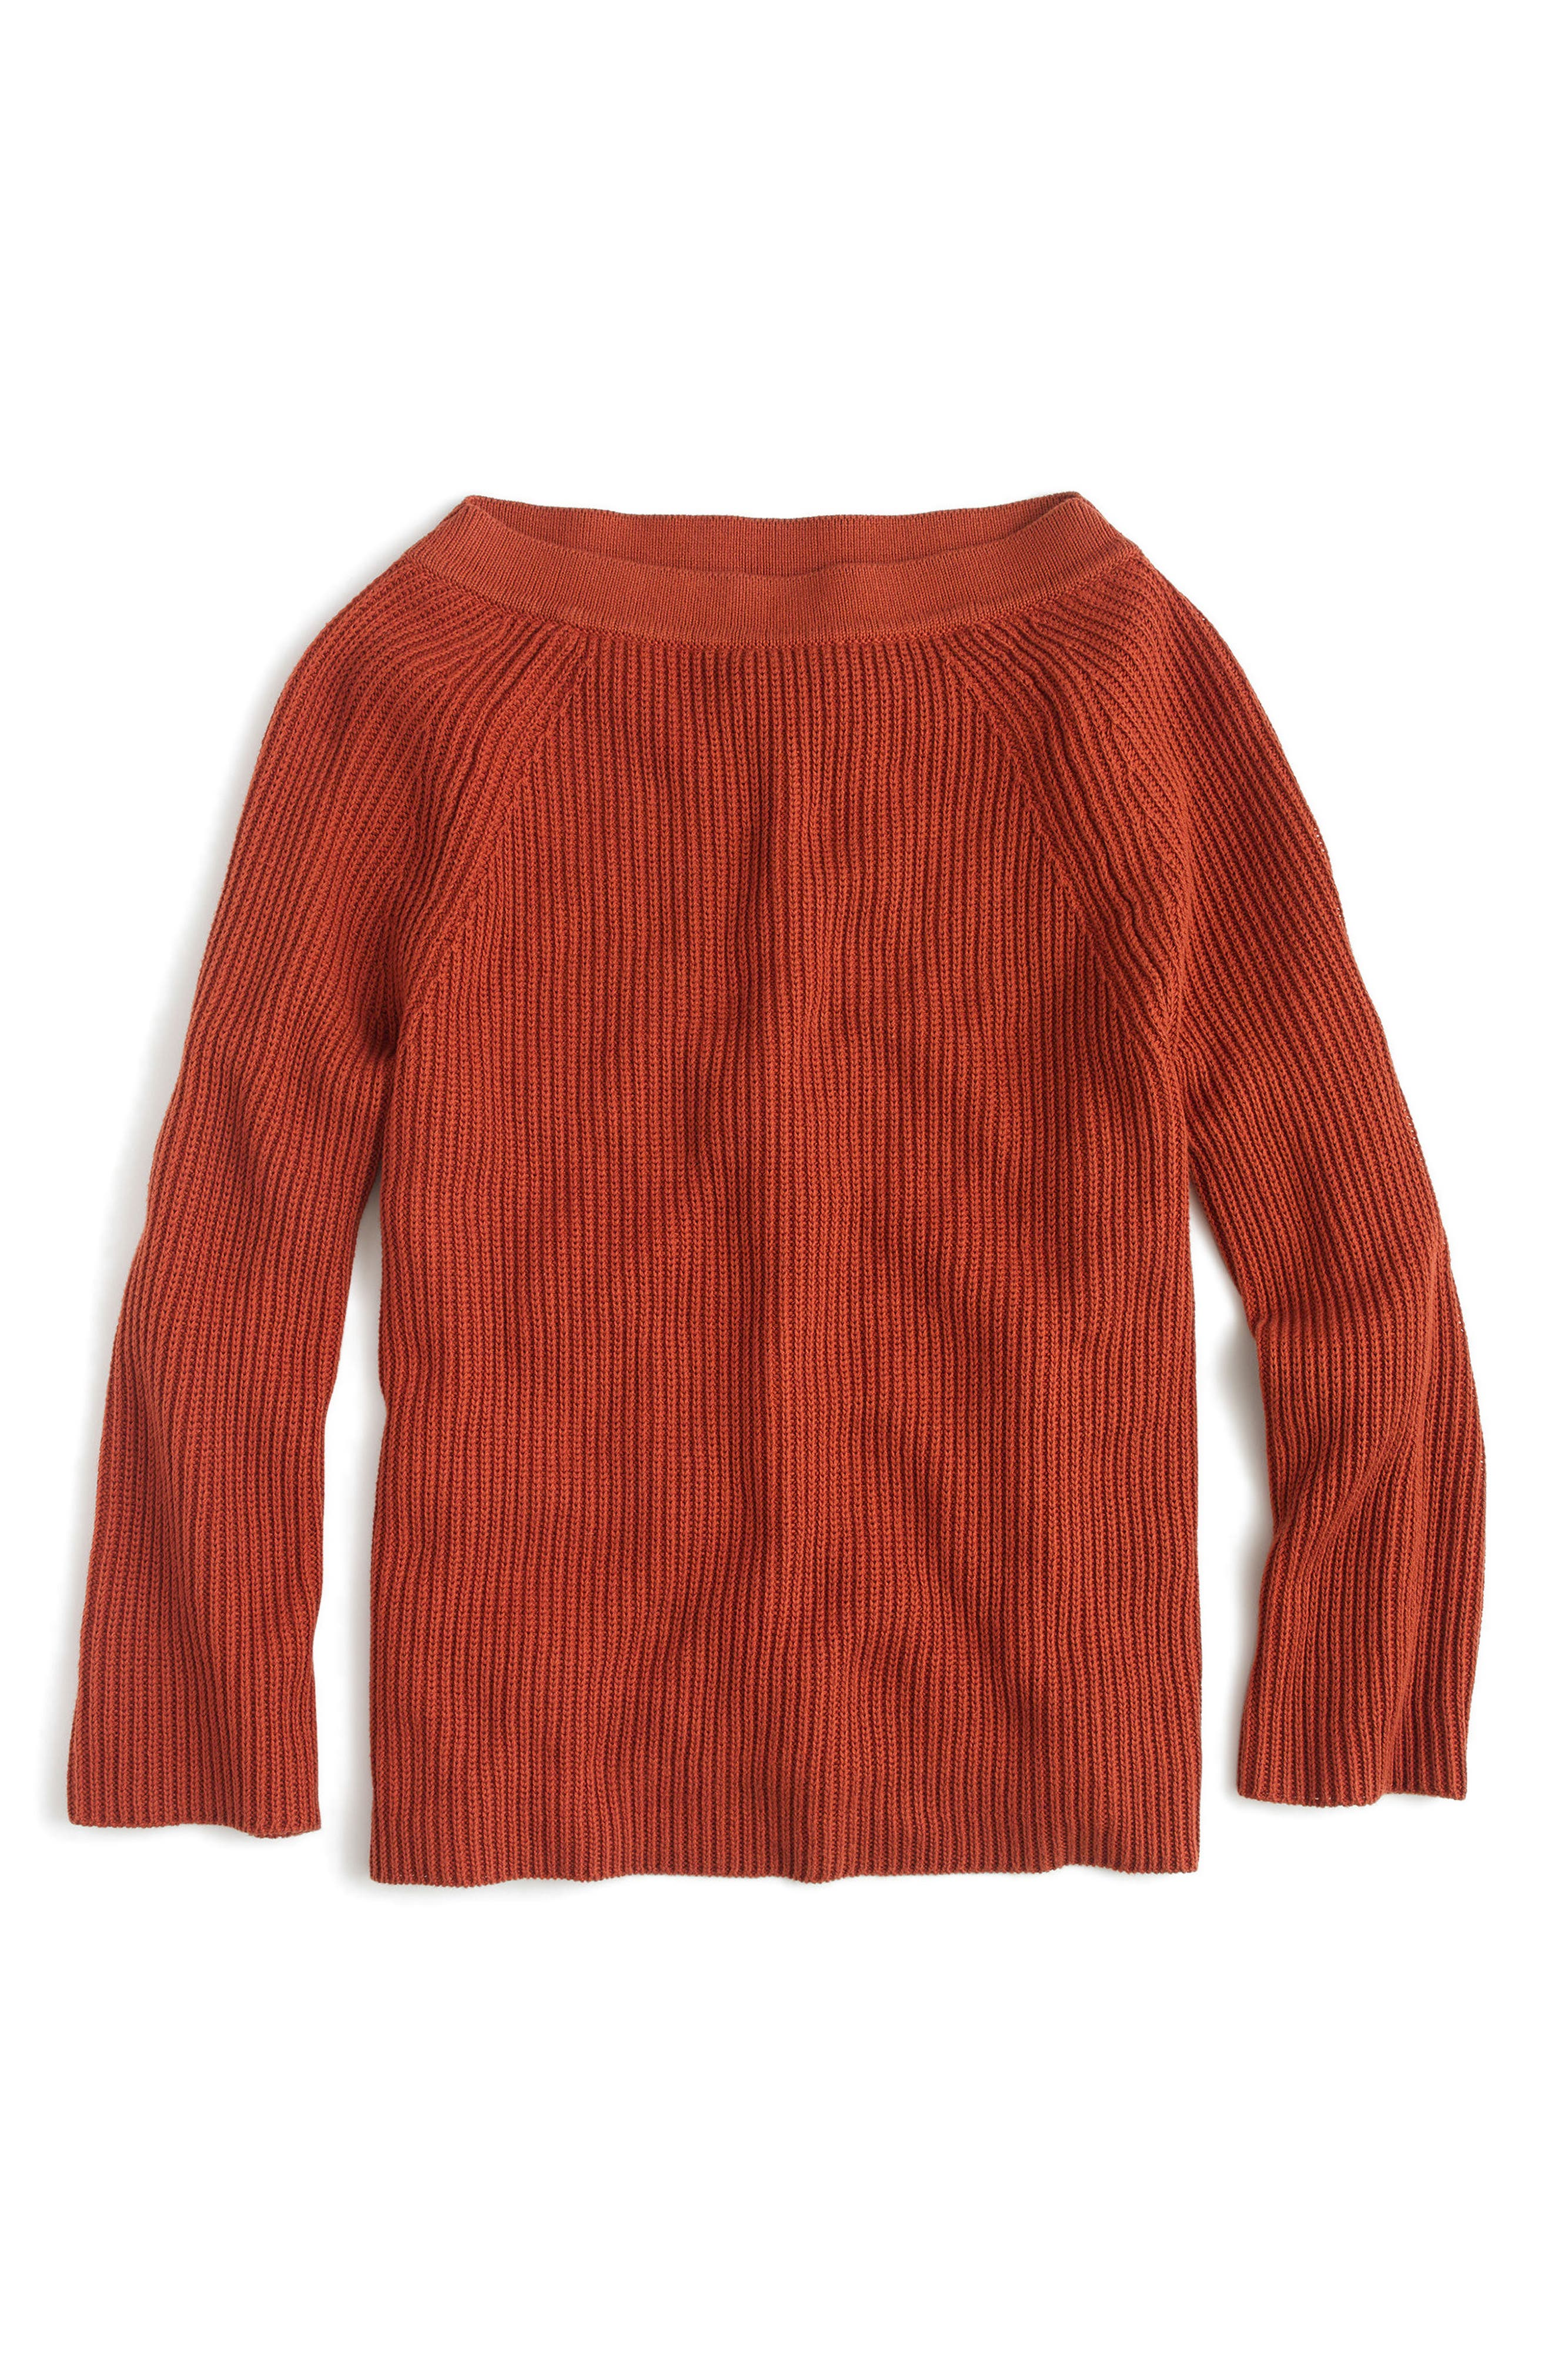 Alternate Image 3  - J.Crew Relaxed Cotton Boatneck Sweater